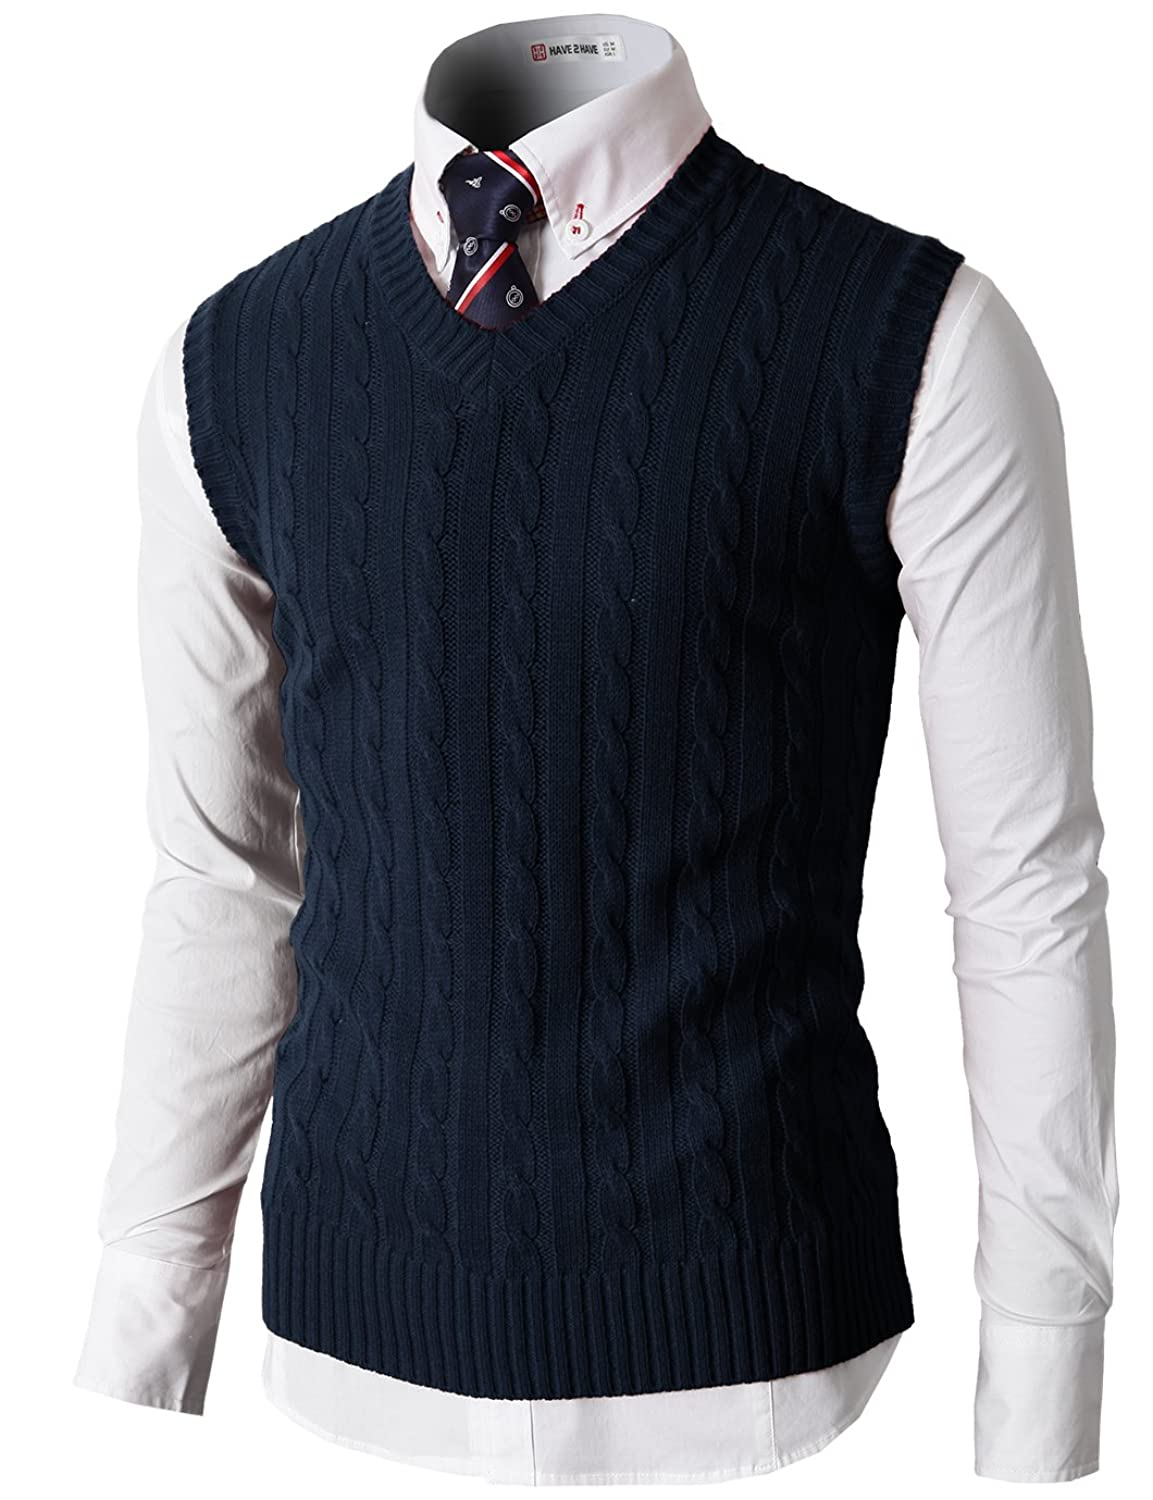 Men's Vintage Vests, Sweater Vests H2H Mens Casual Slim Fit Soft Acrylic Solid Pullover Cable Sweater Links-Vest  AT vintagedancer.com